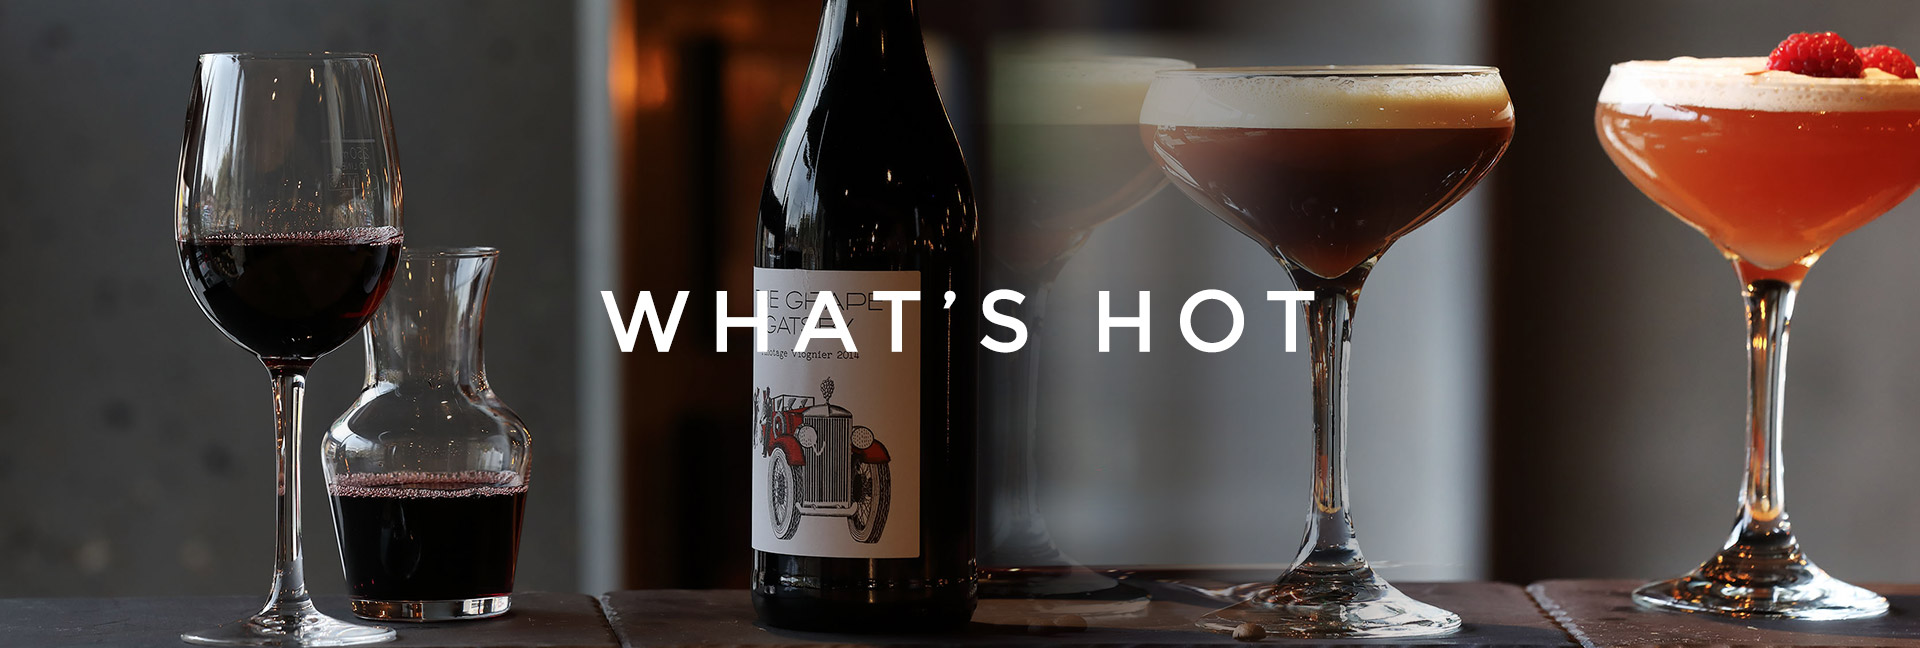 What's Hot at All Bar One Battersea